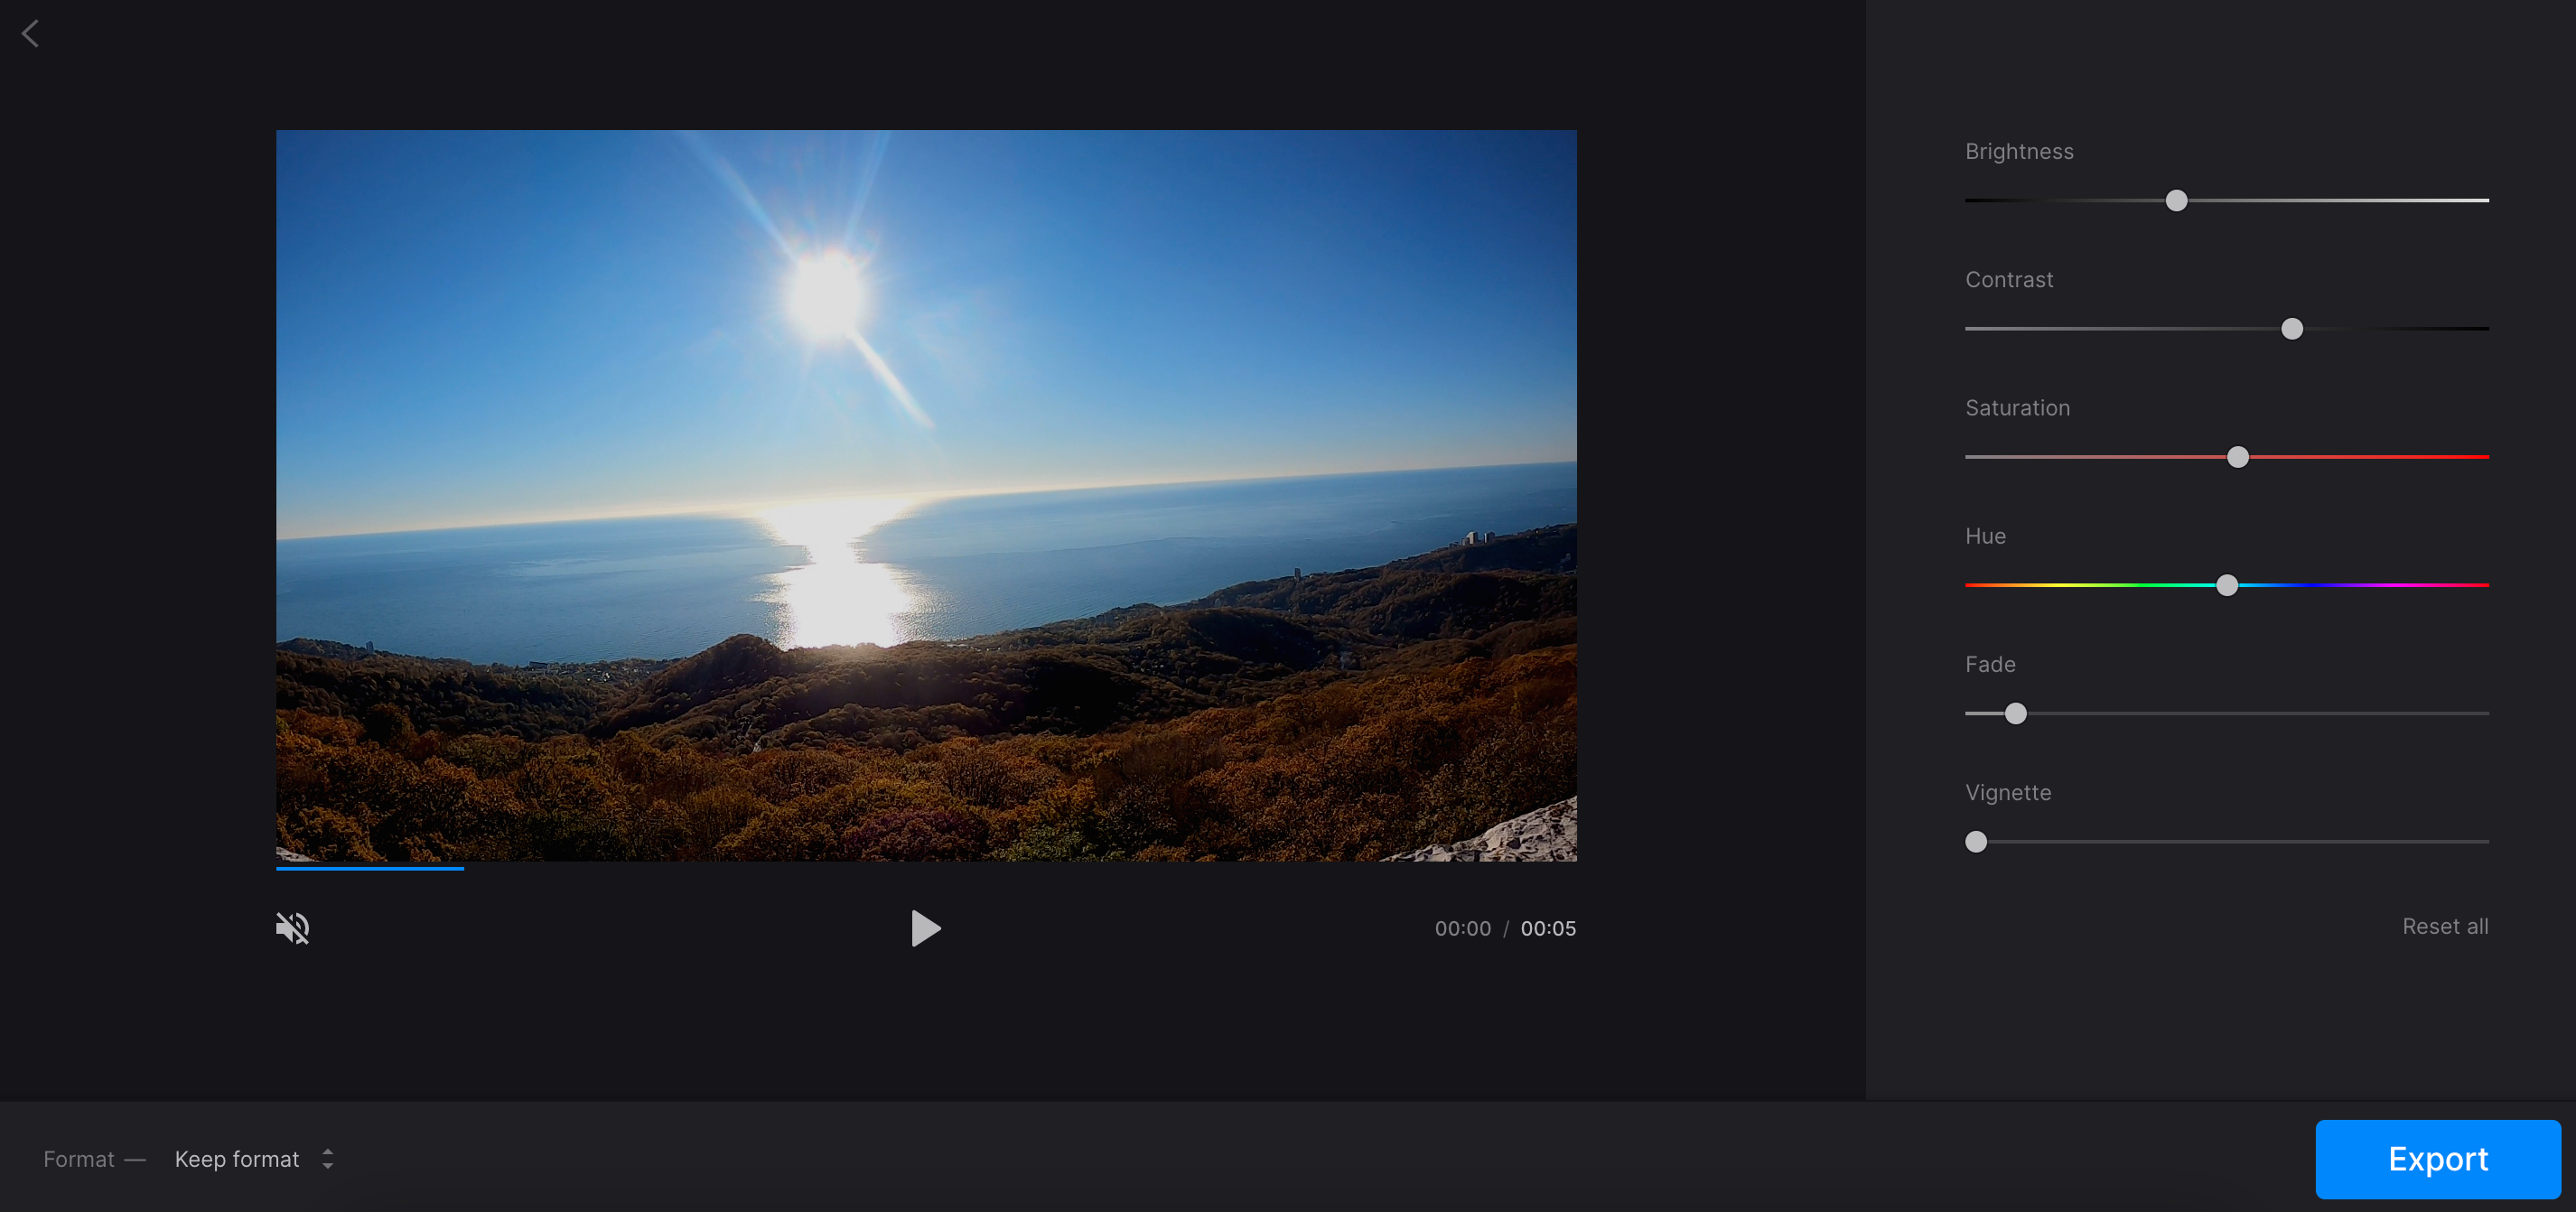 Fix overexposed video with Clideo